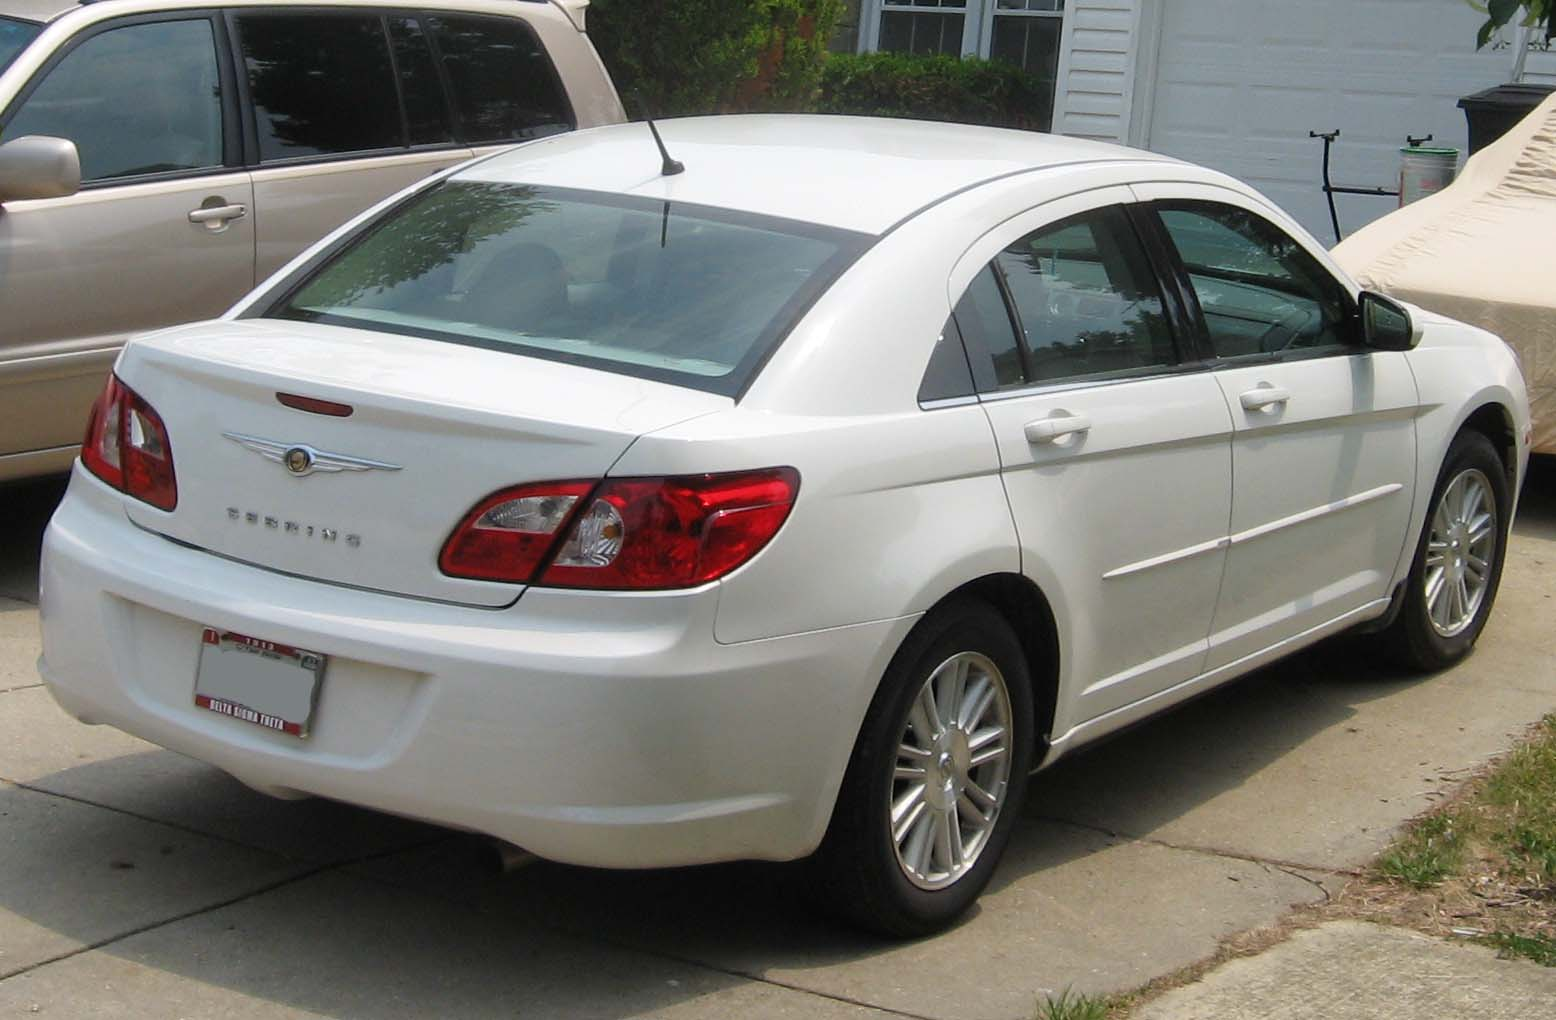 chrysler sebring reviews chrysler sebring car reviews. Black Bedroom Furniture Sets. Home Design Ideas